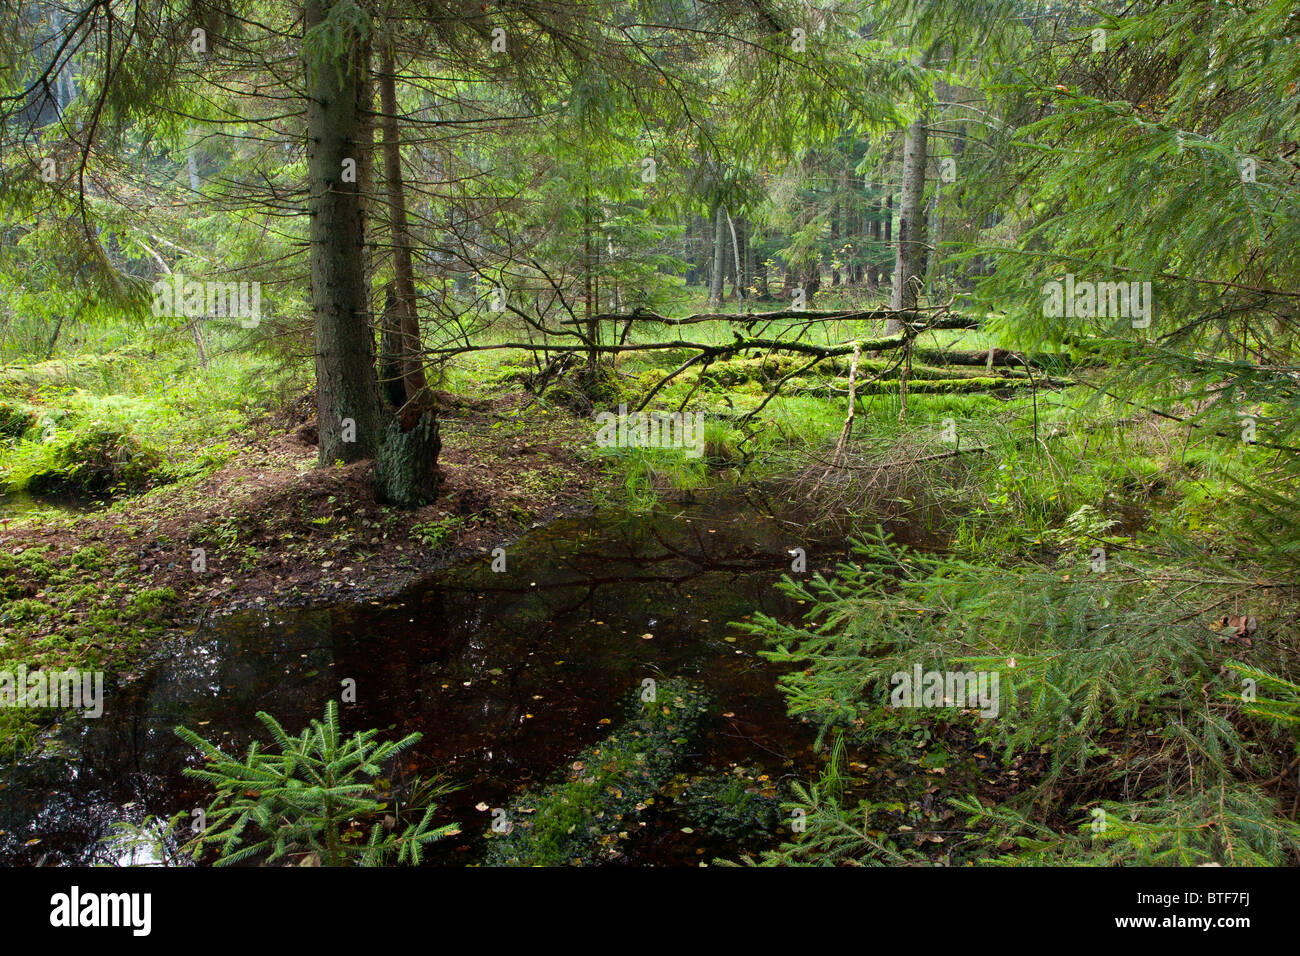 Autumnal look of swampy stand with little river flowing among spruces - Stock Image